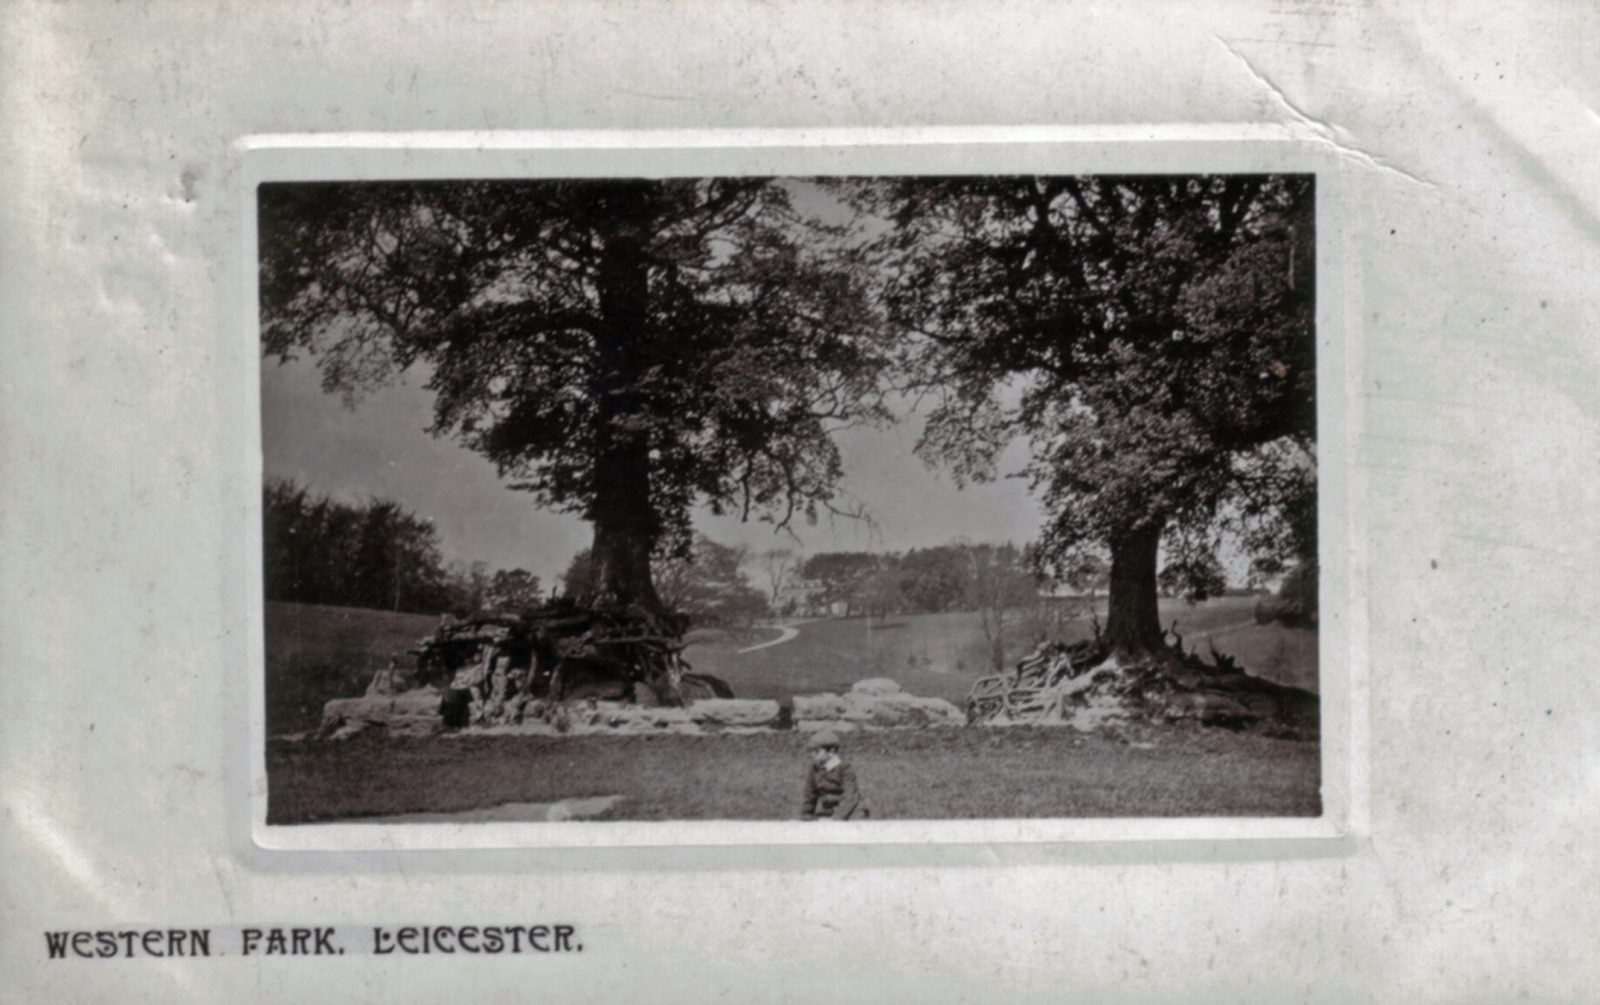 Western Park, Leicester. Pre 1900: Western Park with some children playing with Hall in background. Franked 1907 (File:1223)